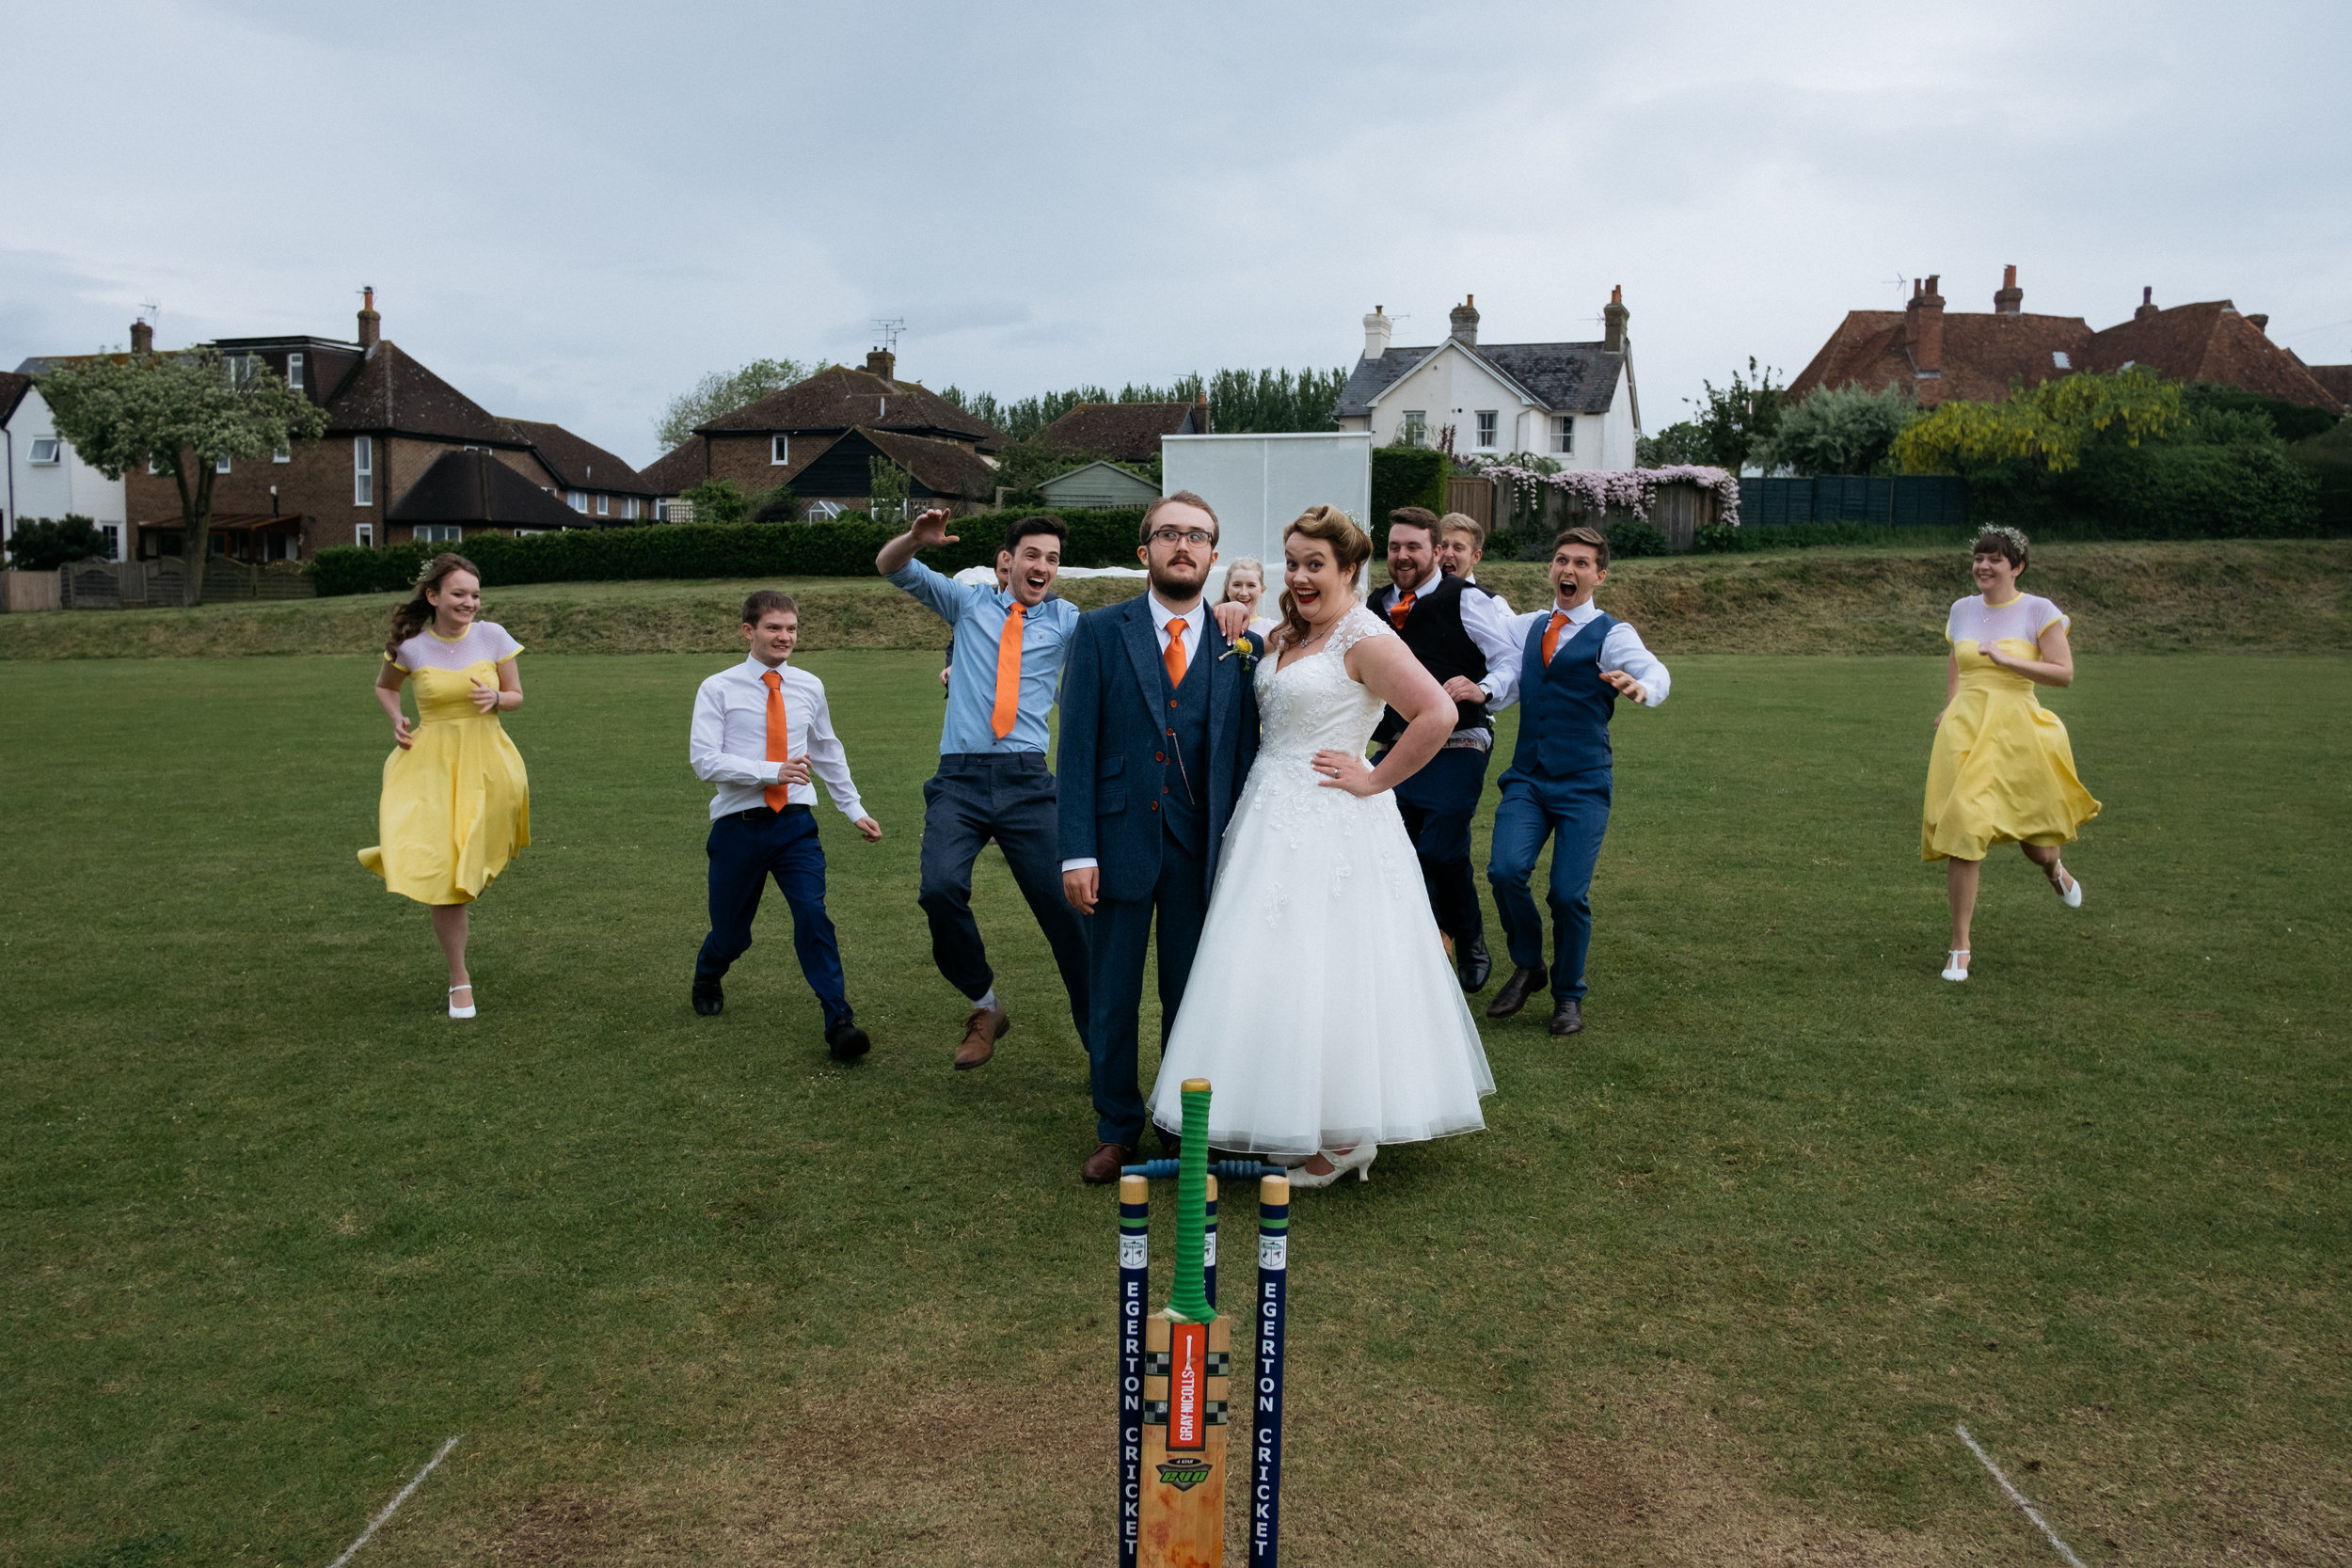 Cricket game on wedding day